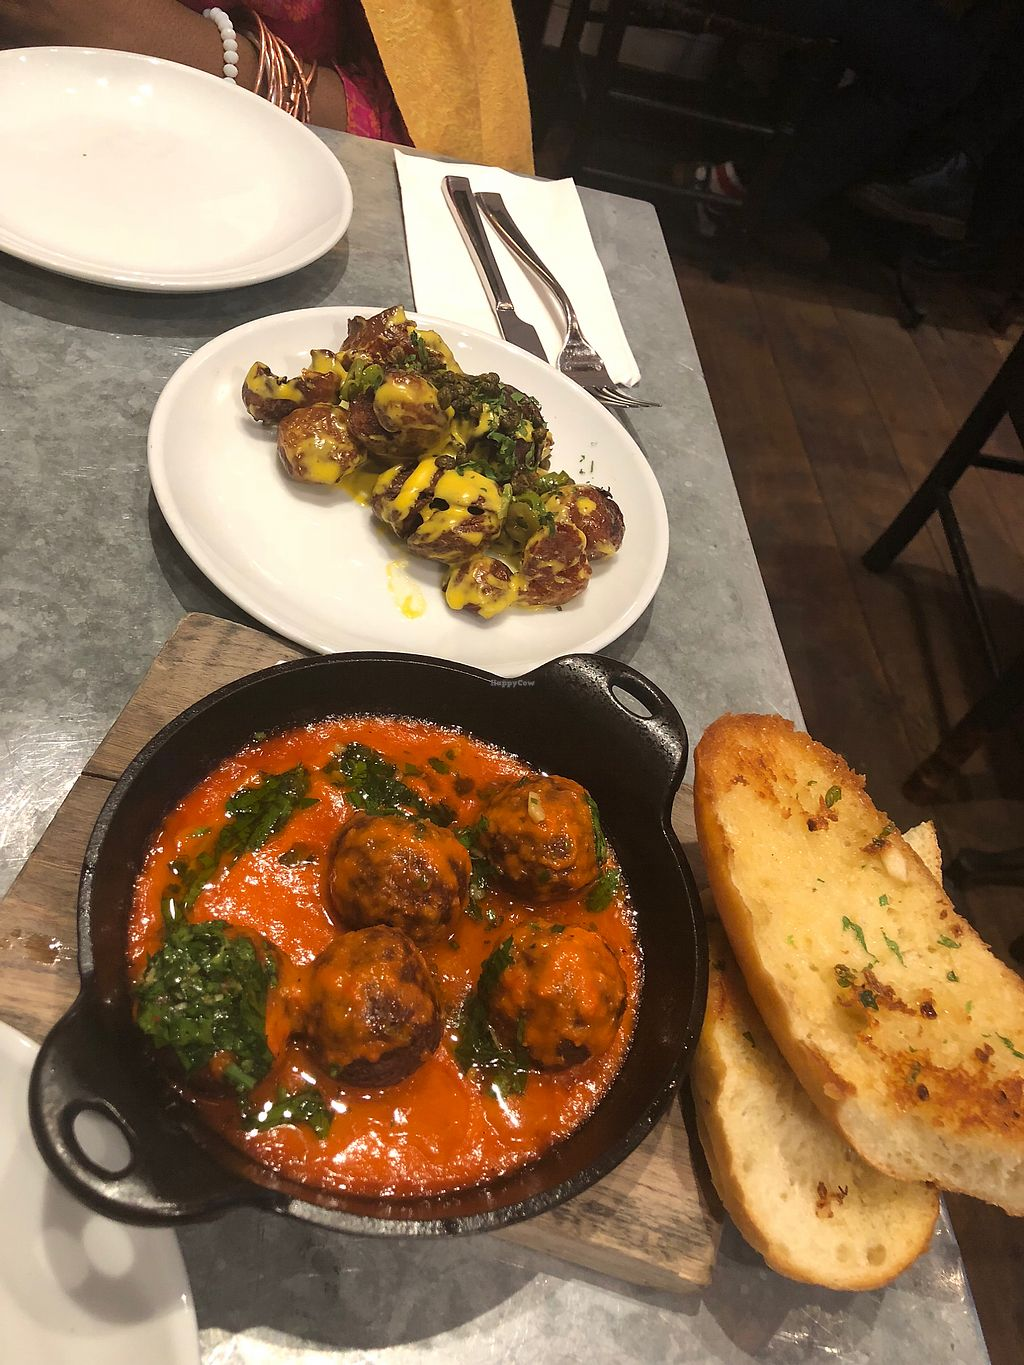 """Photo of Bar Bombon  by <a href=""""/members/profile/NylaDaniel"""">NylaDaniel</a> <br/>Spanish meatballs  <br/> March 24, 2018  - <a href='/contact/abuse/image/61877/375502'>Report</a>"""